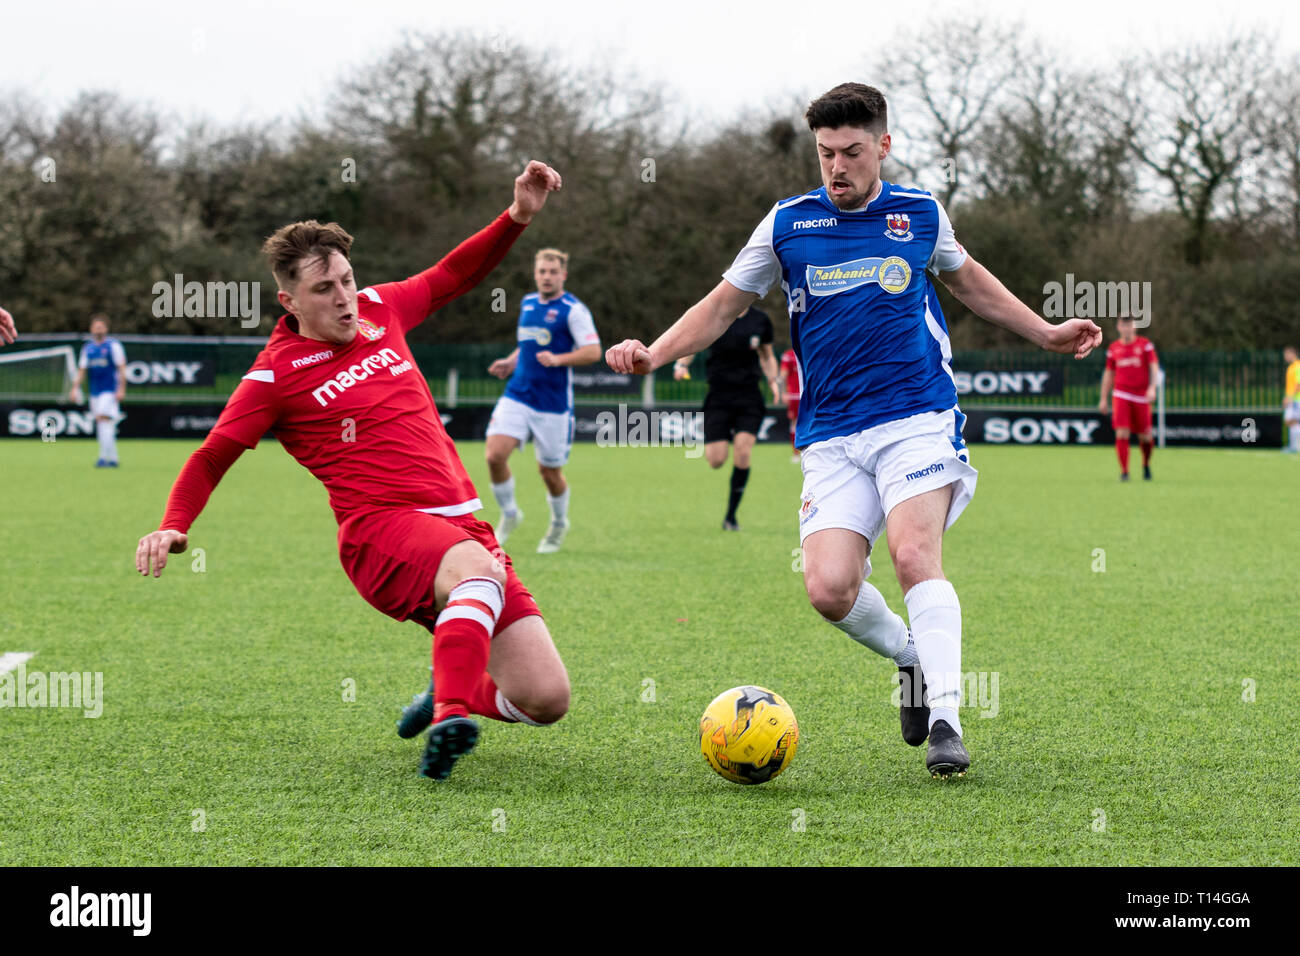 Penybont beat Briton Ferry & Llansawel 2-0 in Welsh Football League Division One at Bryntirion Park. Stock Photo